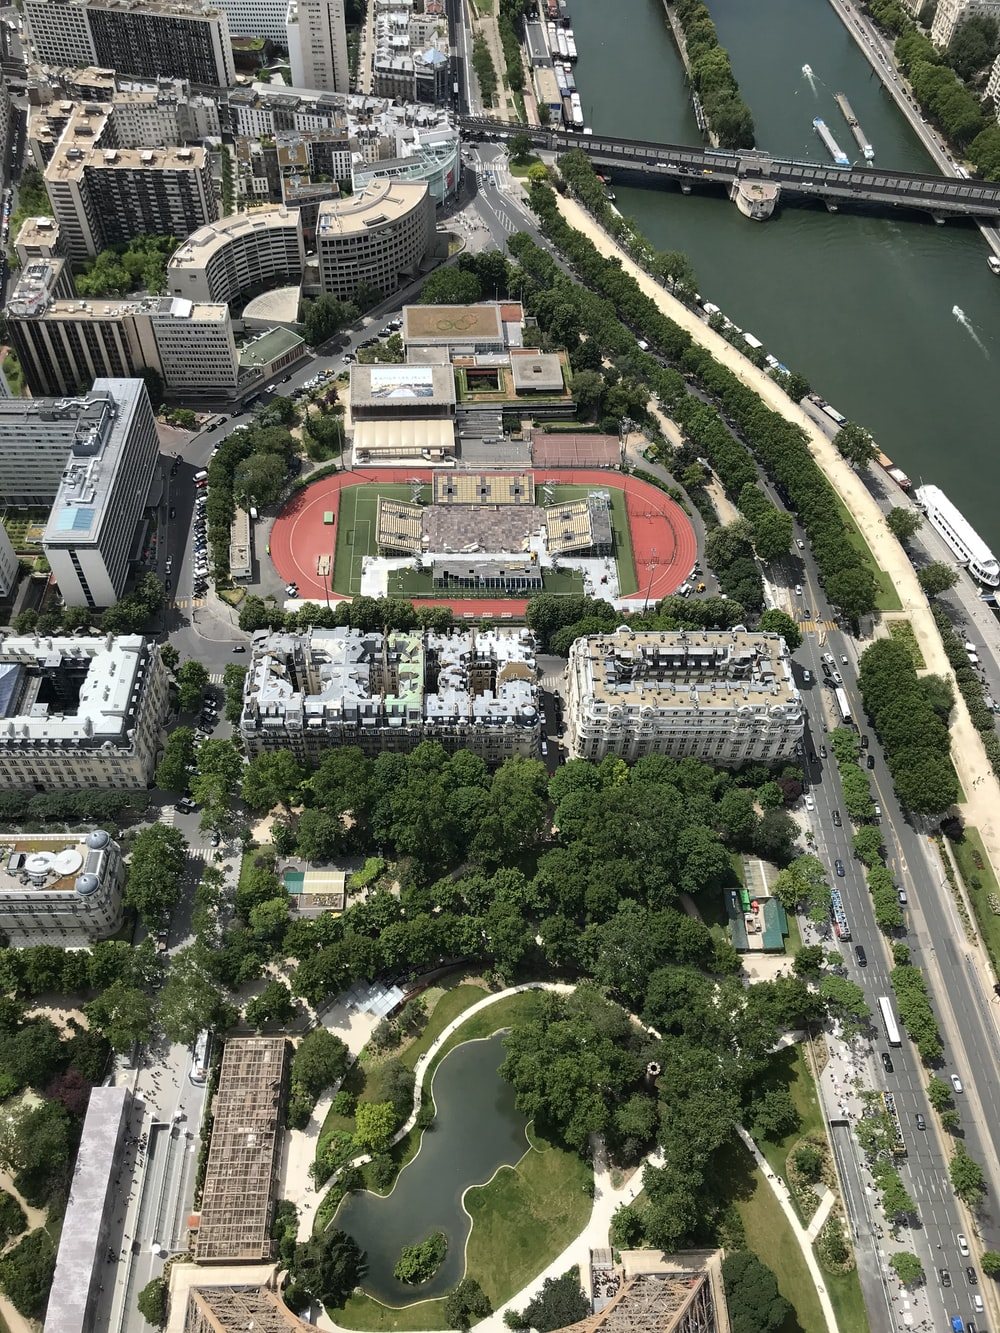 aerial view of city buildings and green trees during daytime